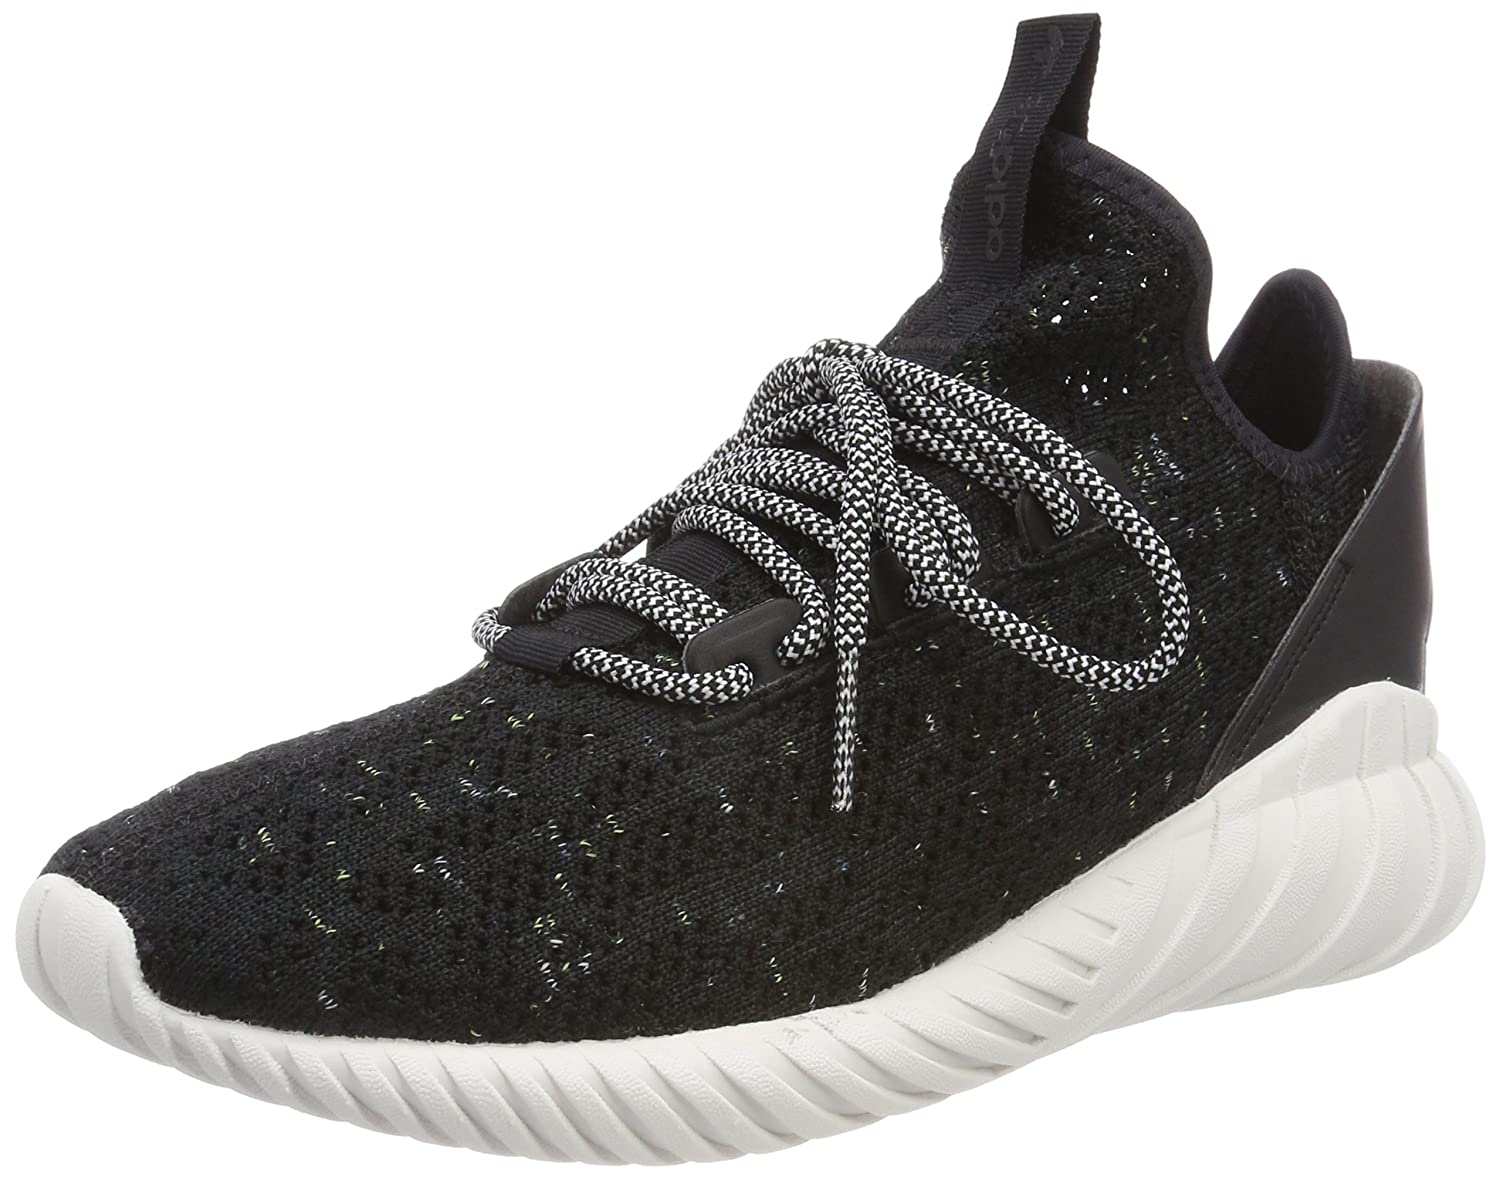 competitive price dcbc2 97783 Amazon.com | Adidas Tubular Doom Sock Primeknit Mens ...